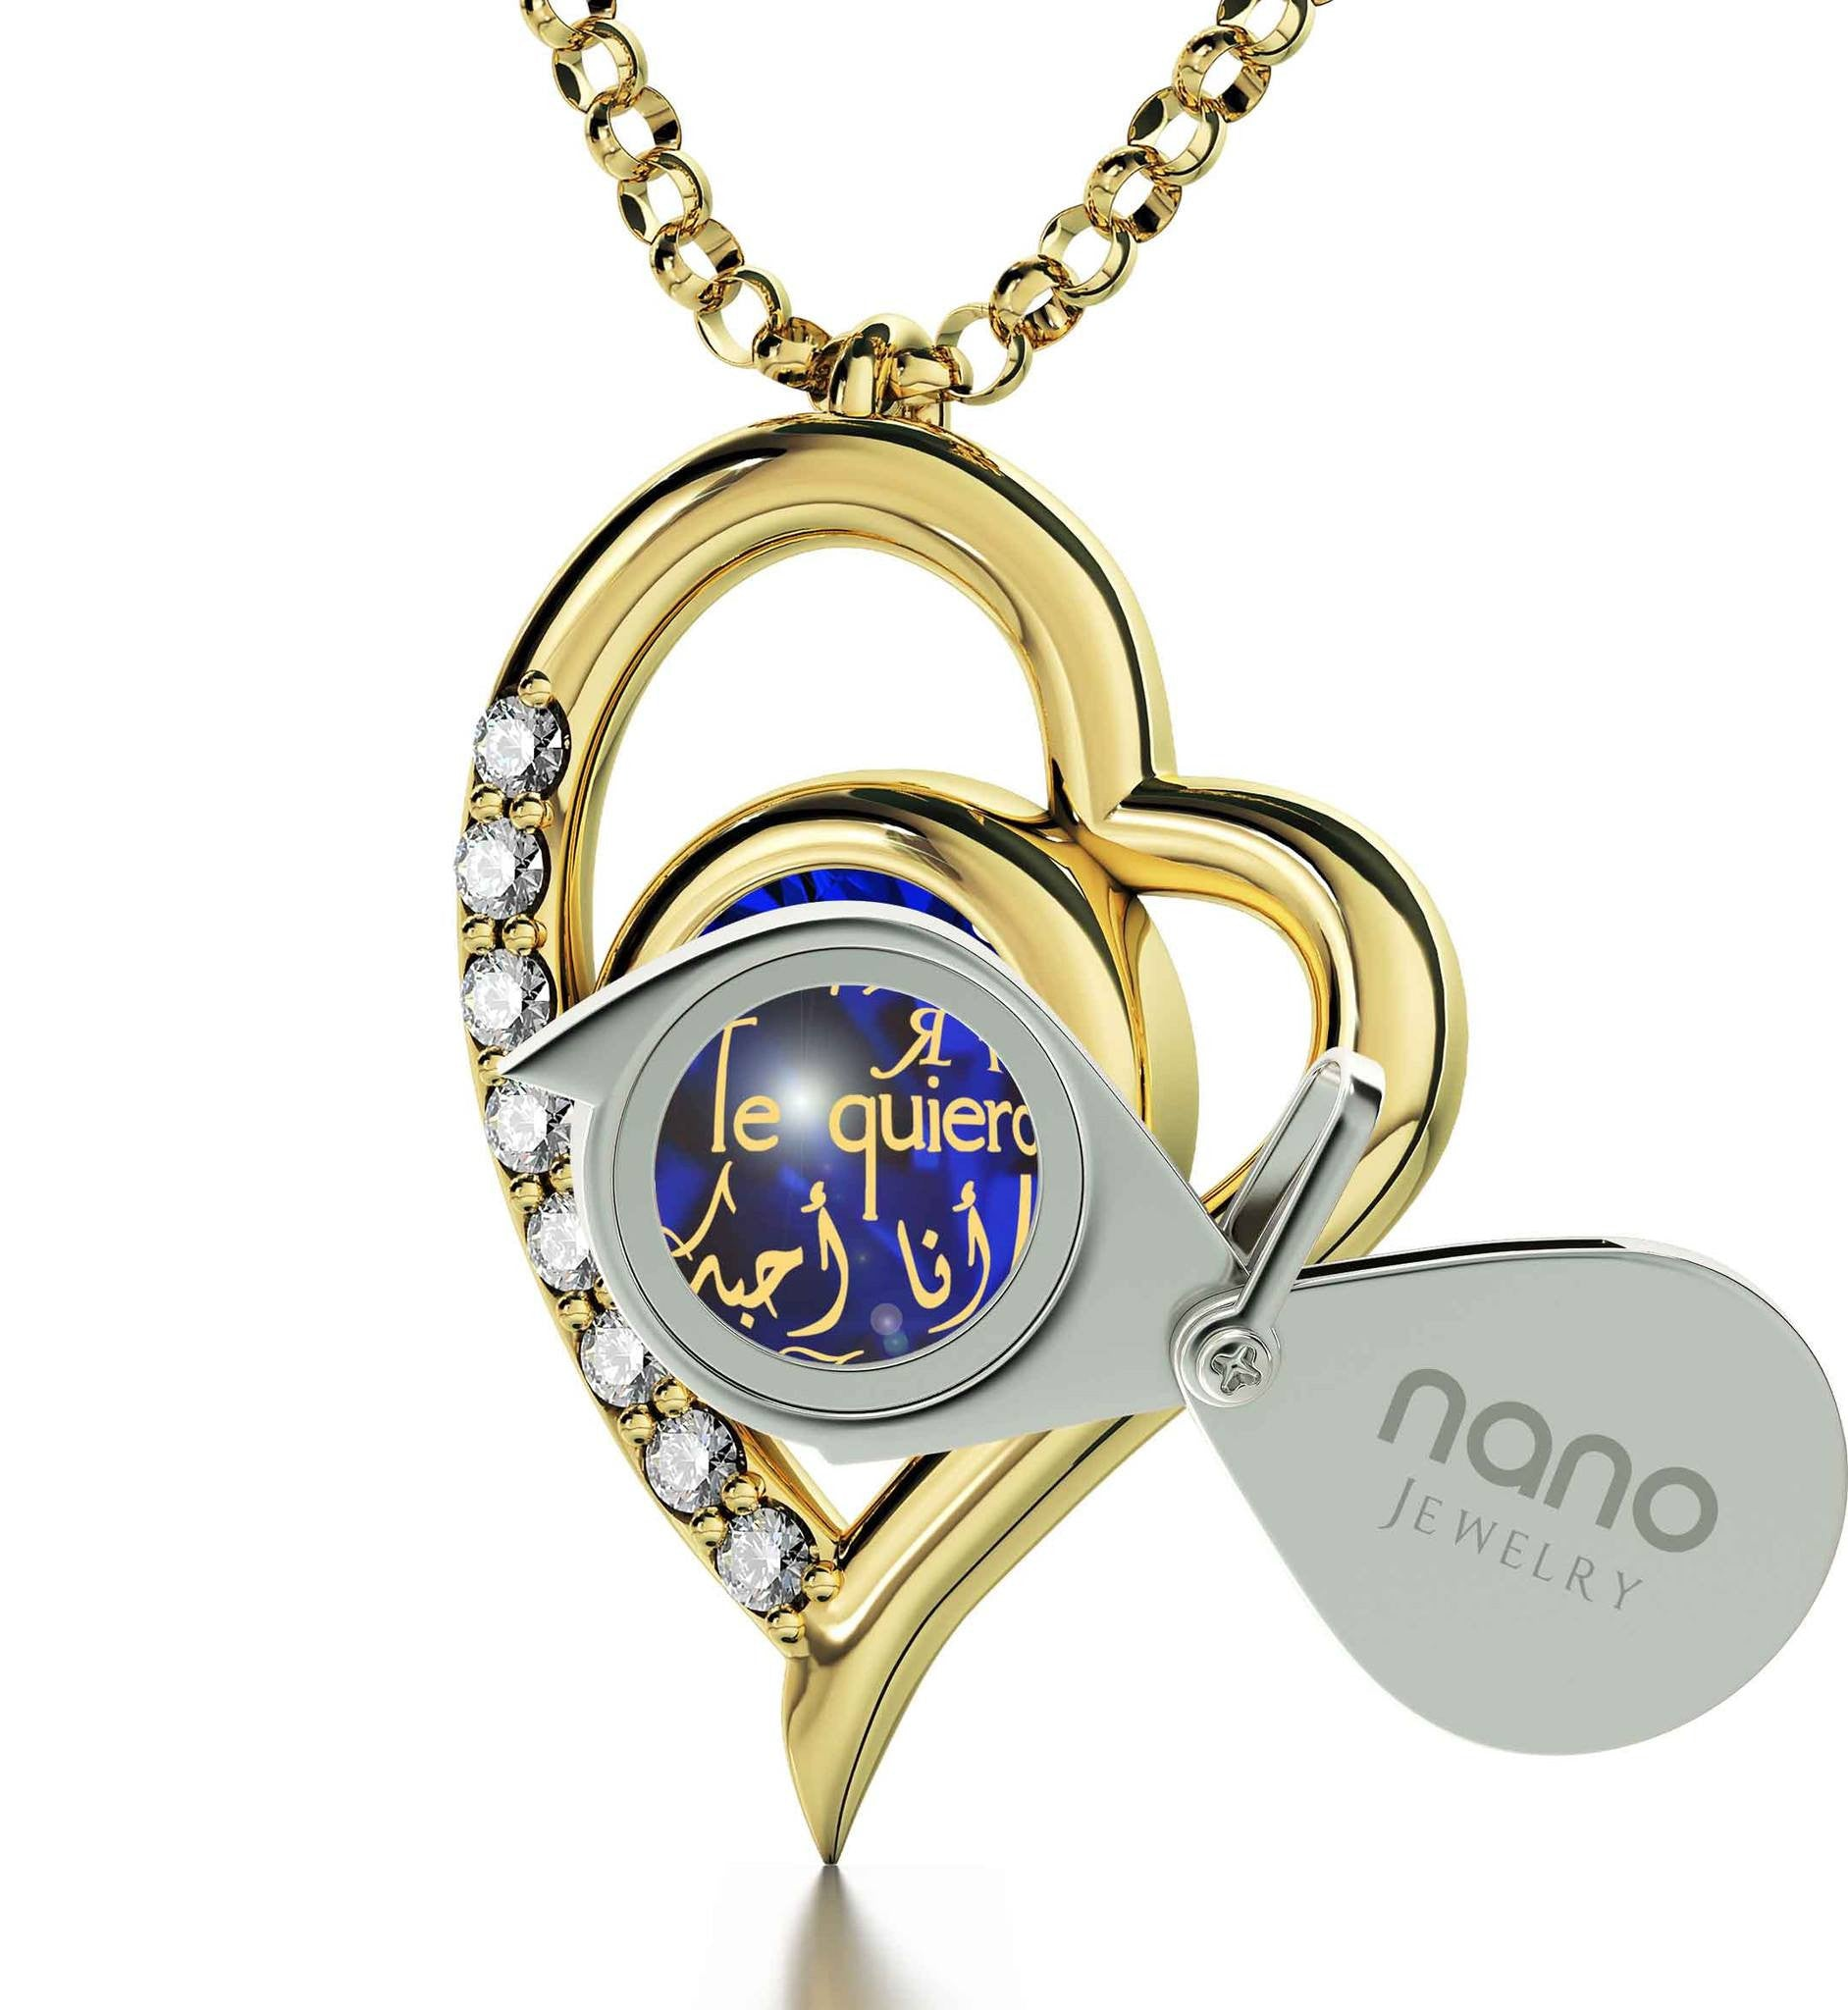 "What to Get Your Girlfriend forValentines Day,""TeQuiero"",CZ Blue Stone, Wife Birthday Ideas by Nano Jewelry"